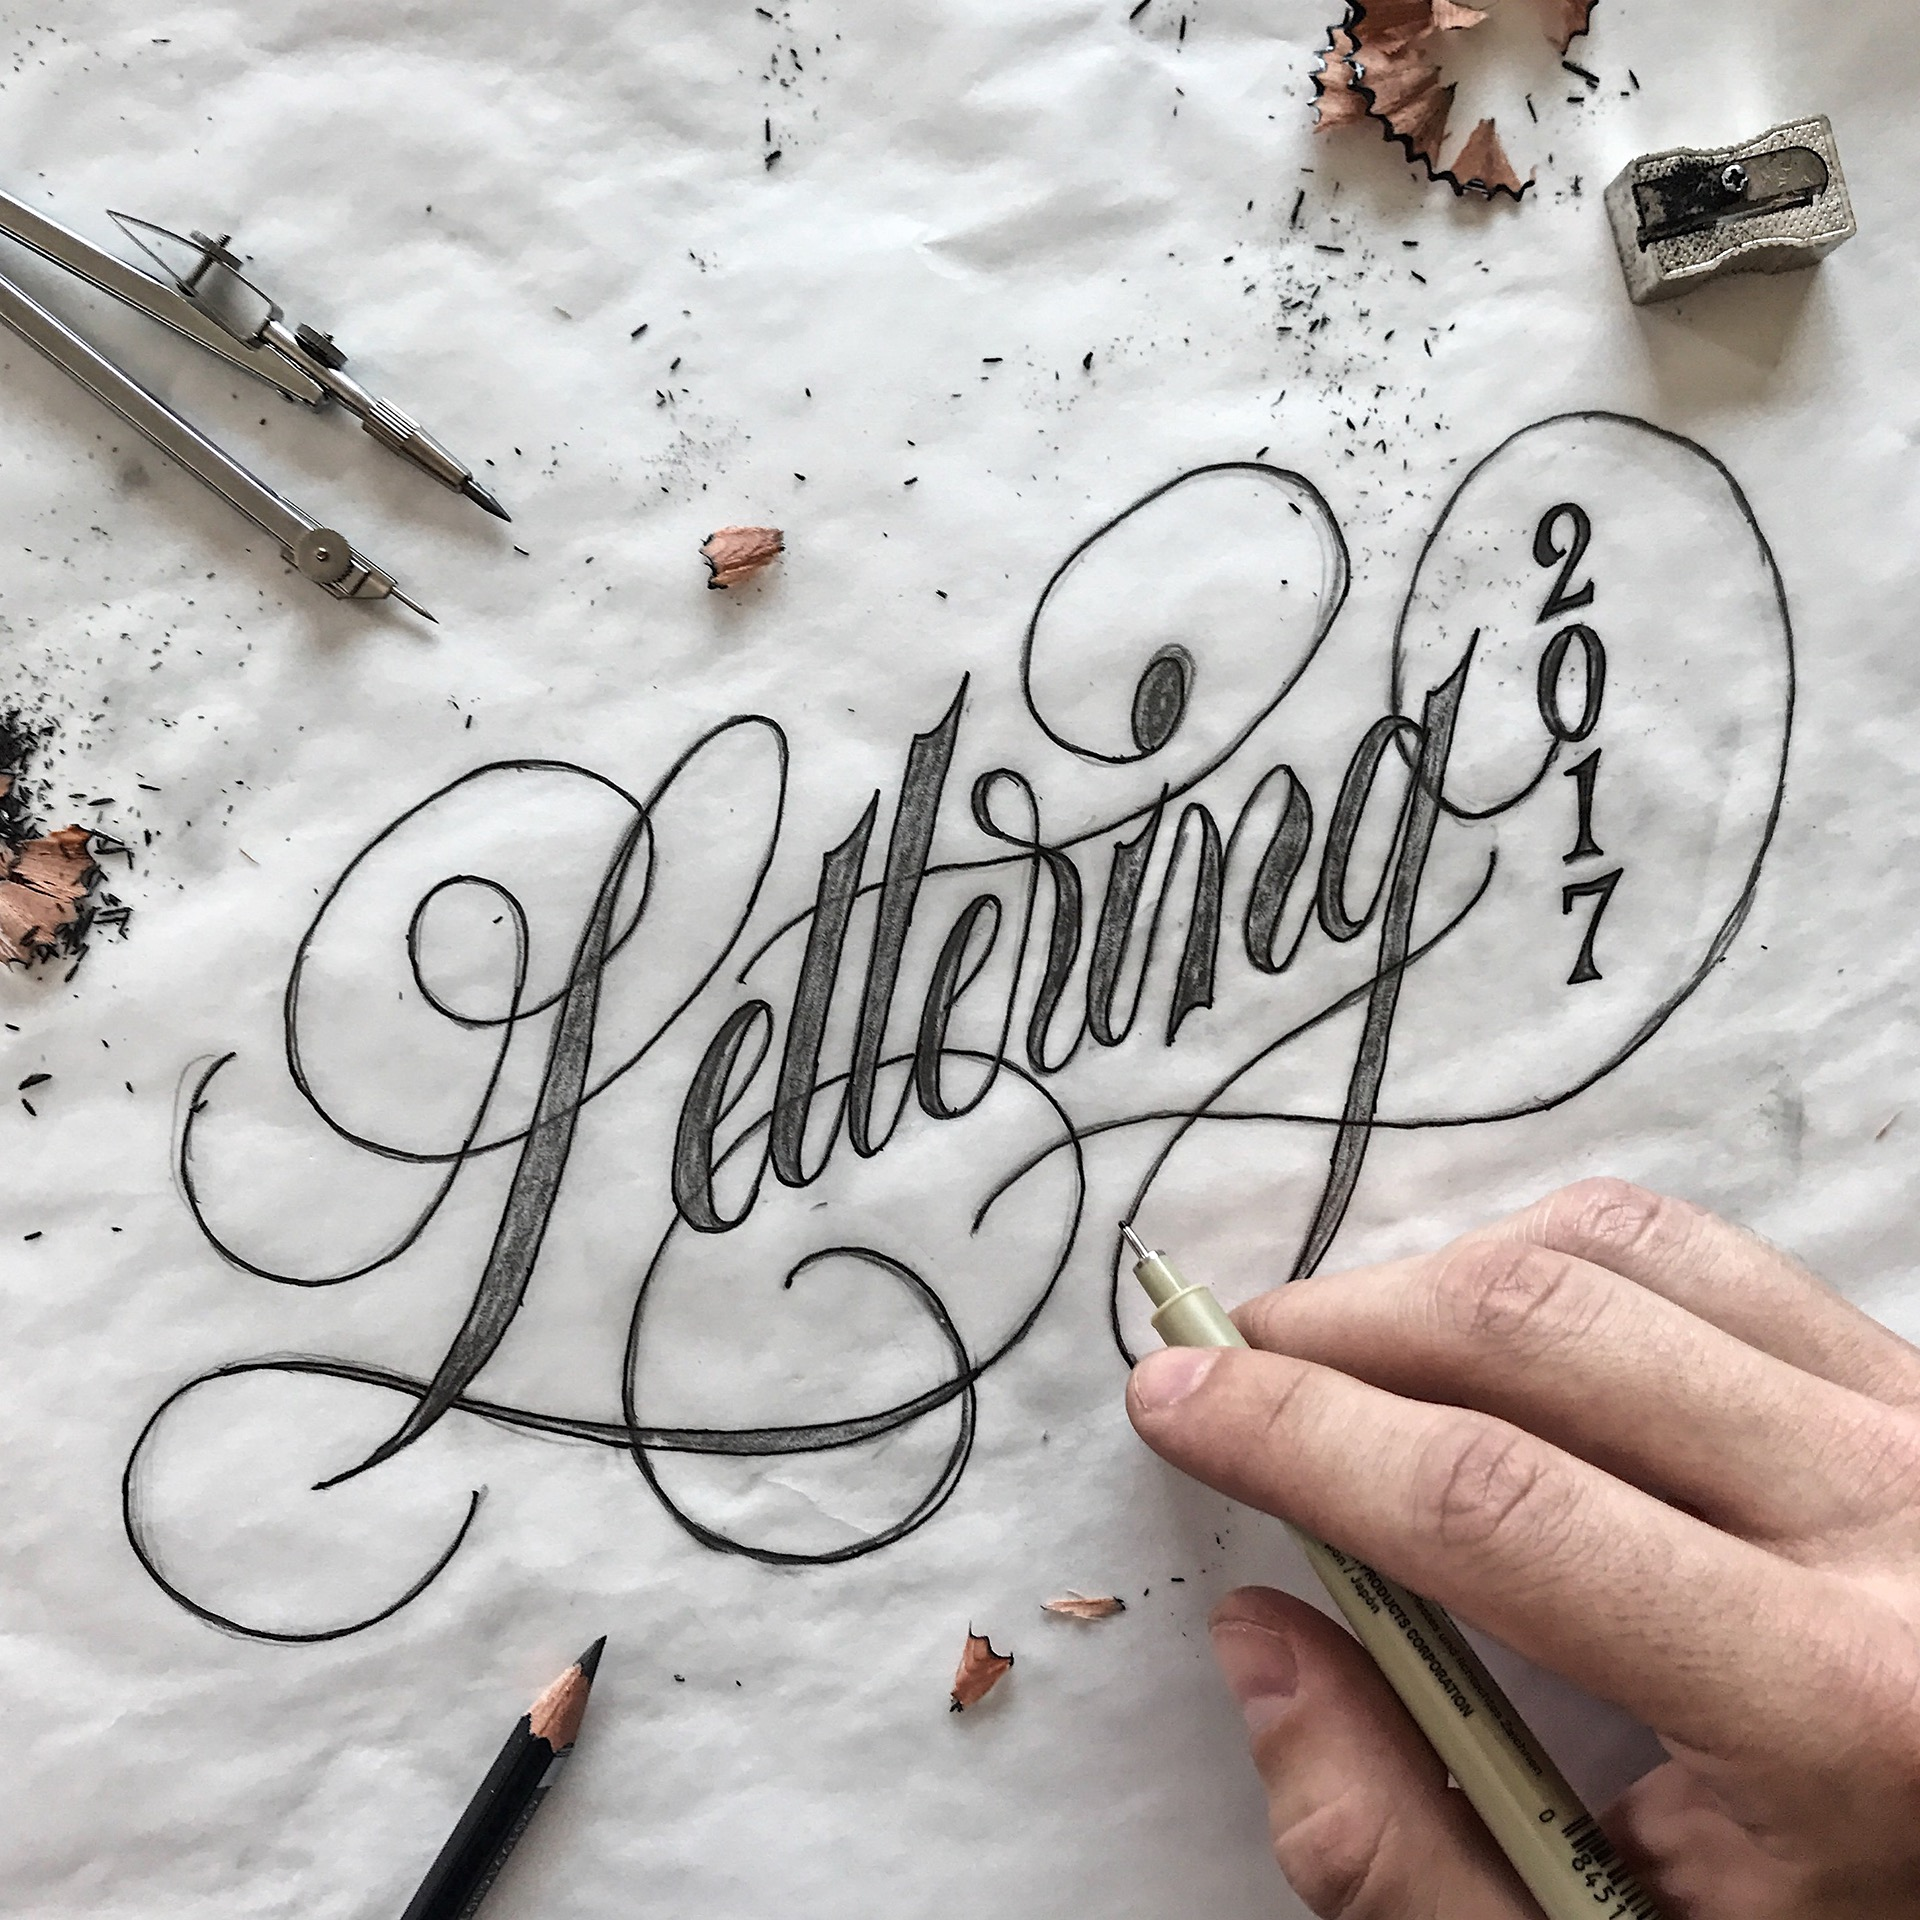 Collection of calligraphy lettering by michael